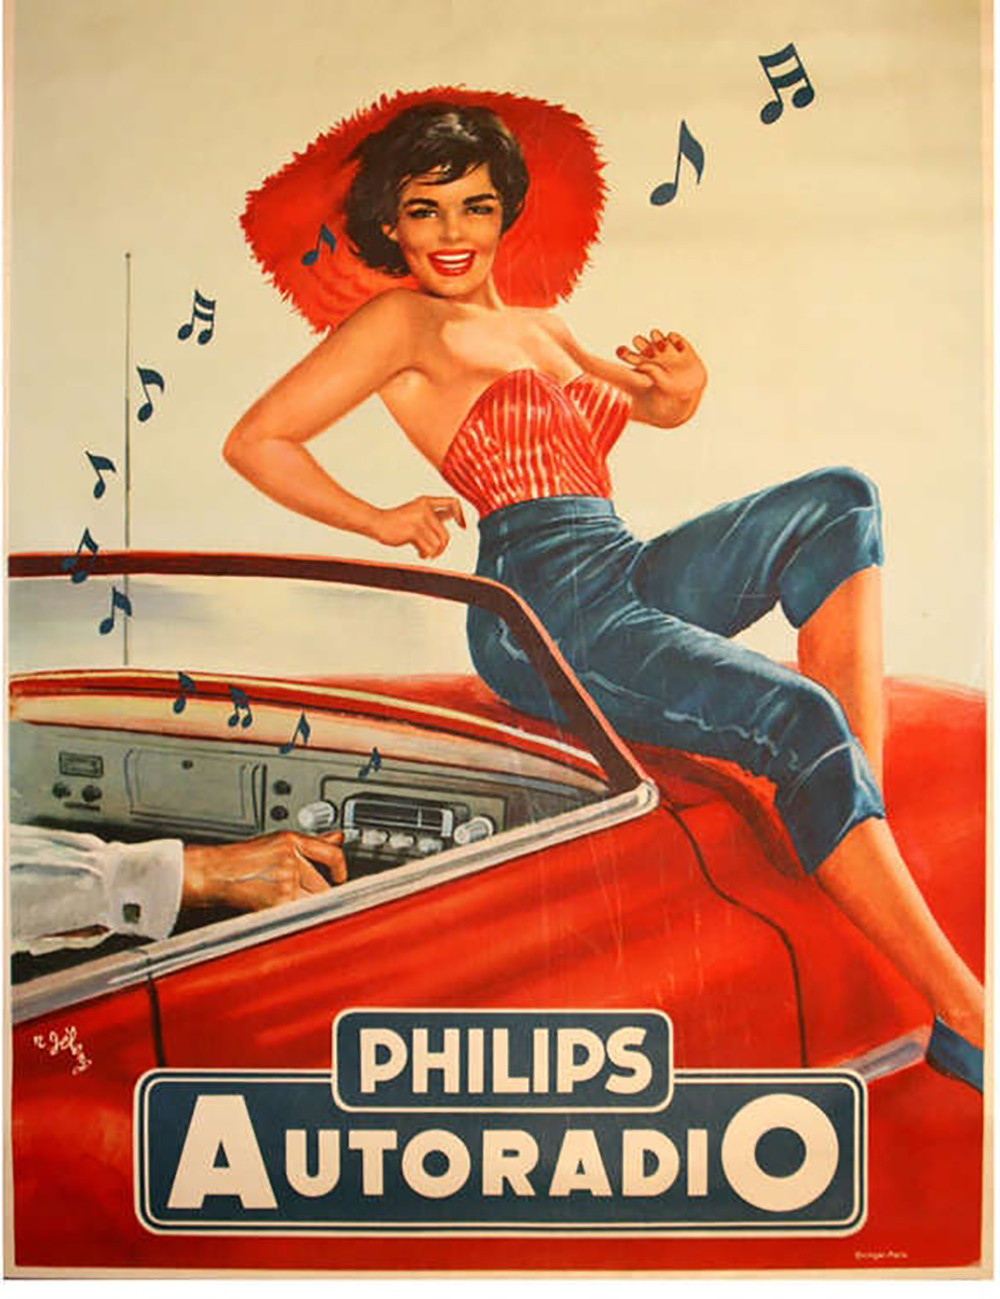 classic pinup poster brunette in tube top and big red hat listens to music on red convertible hood